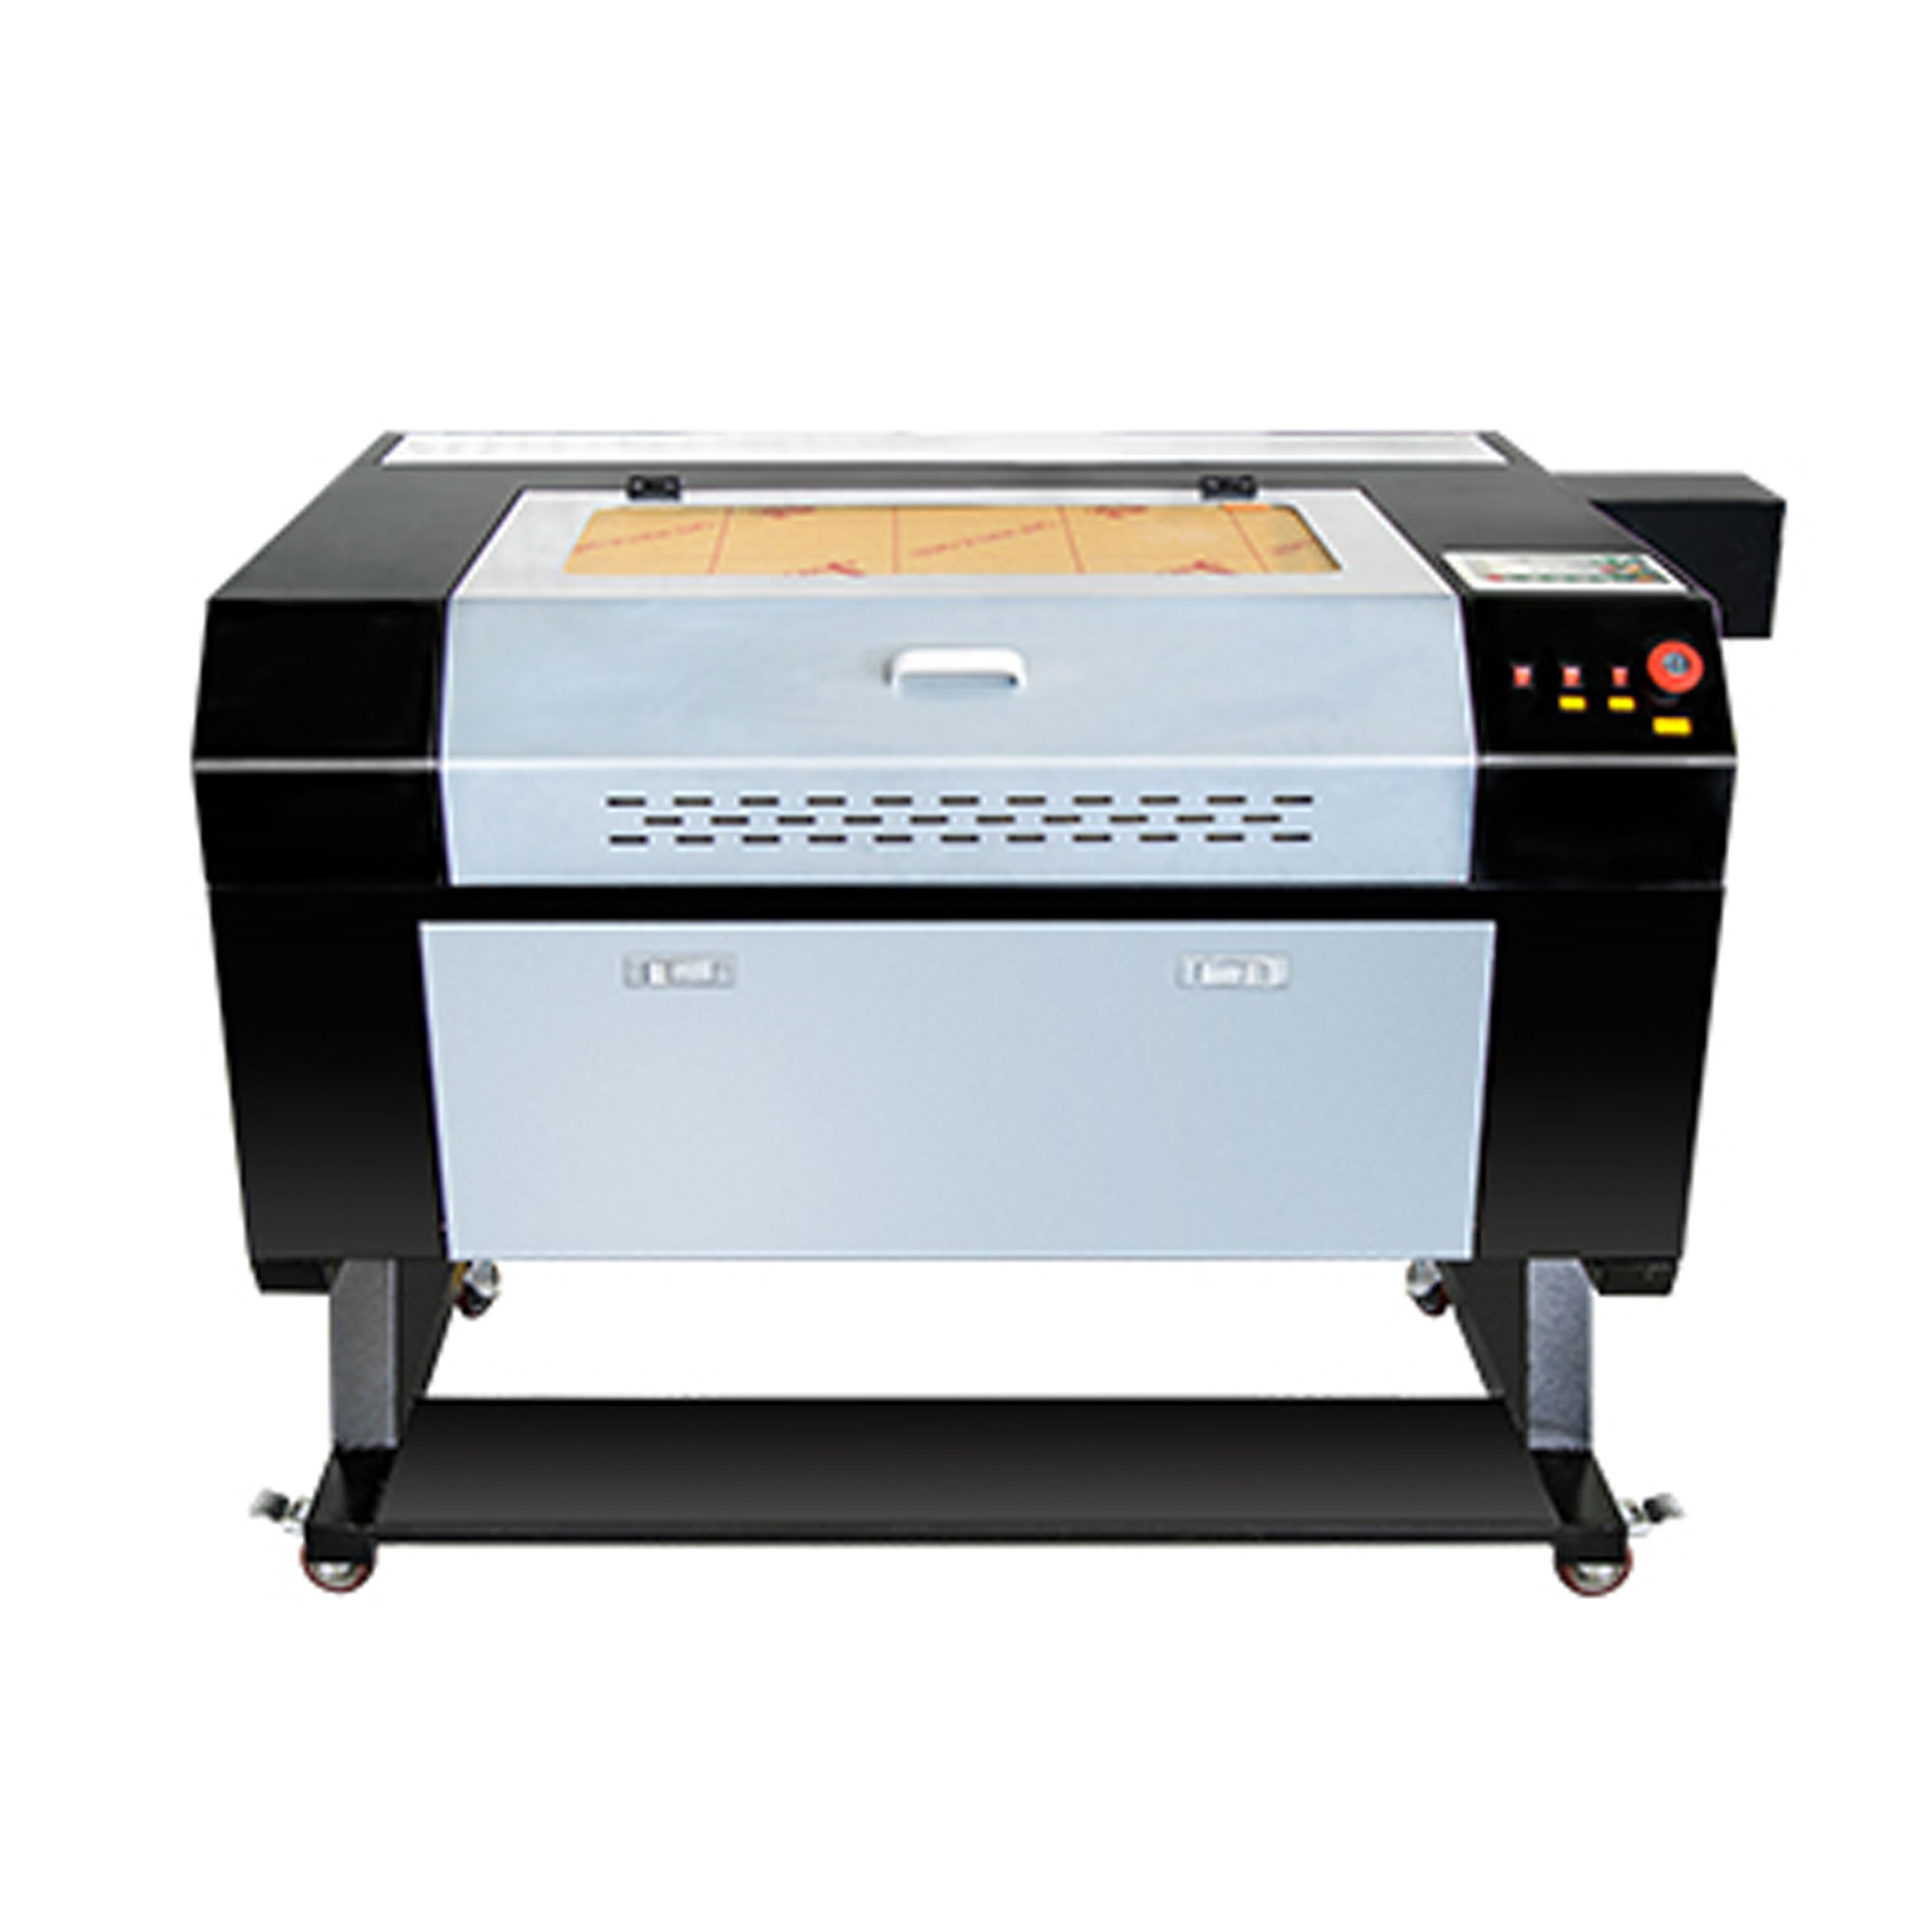 FST-750 Laser Engraving Machine